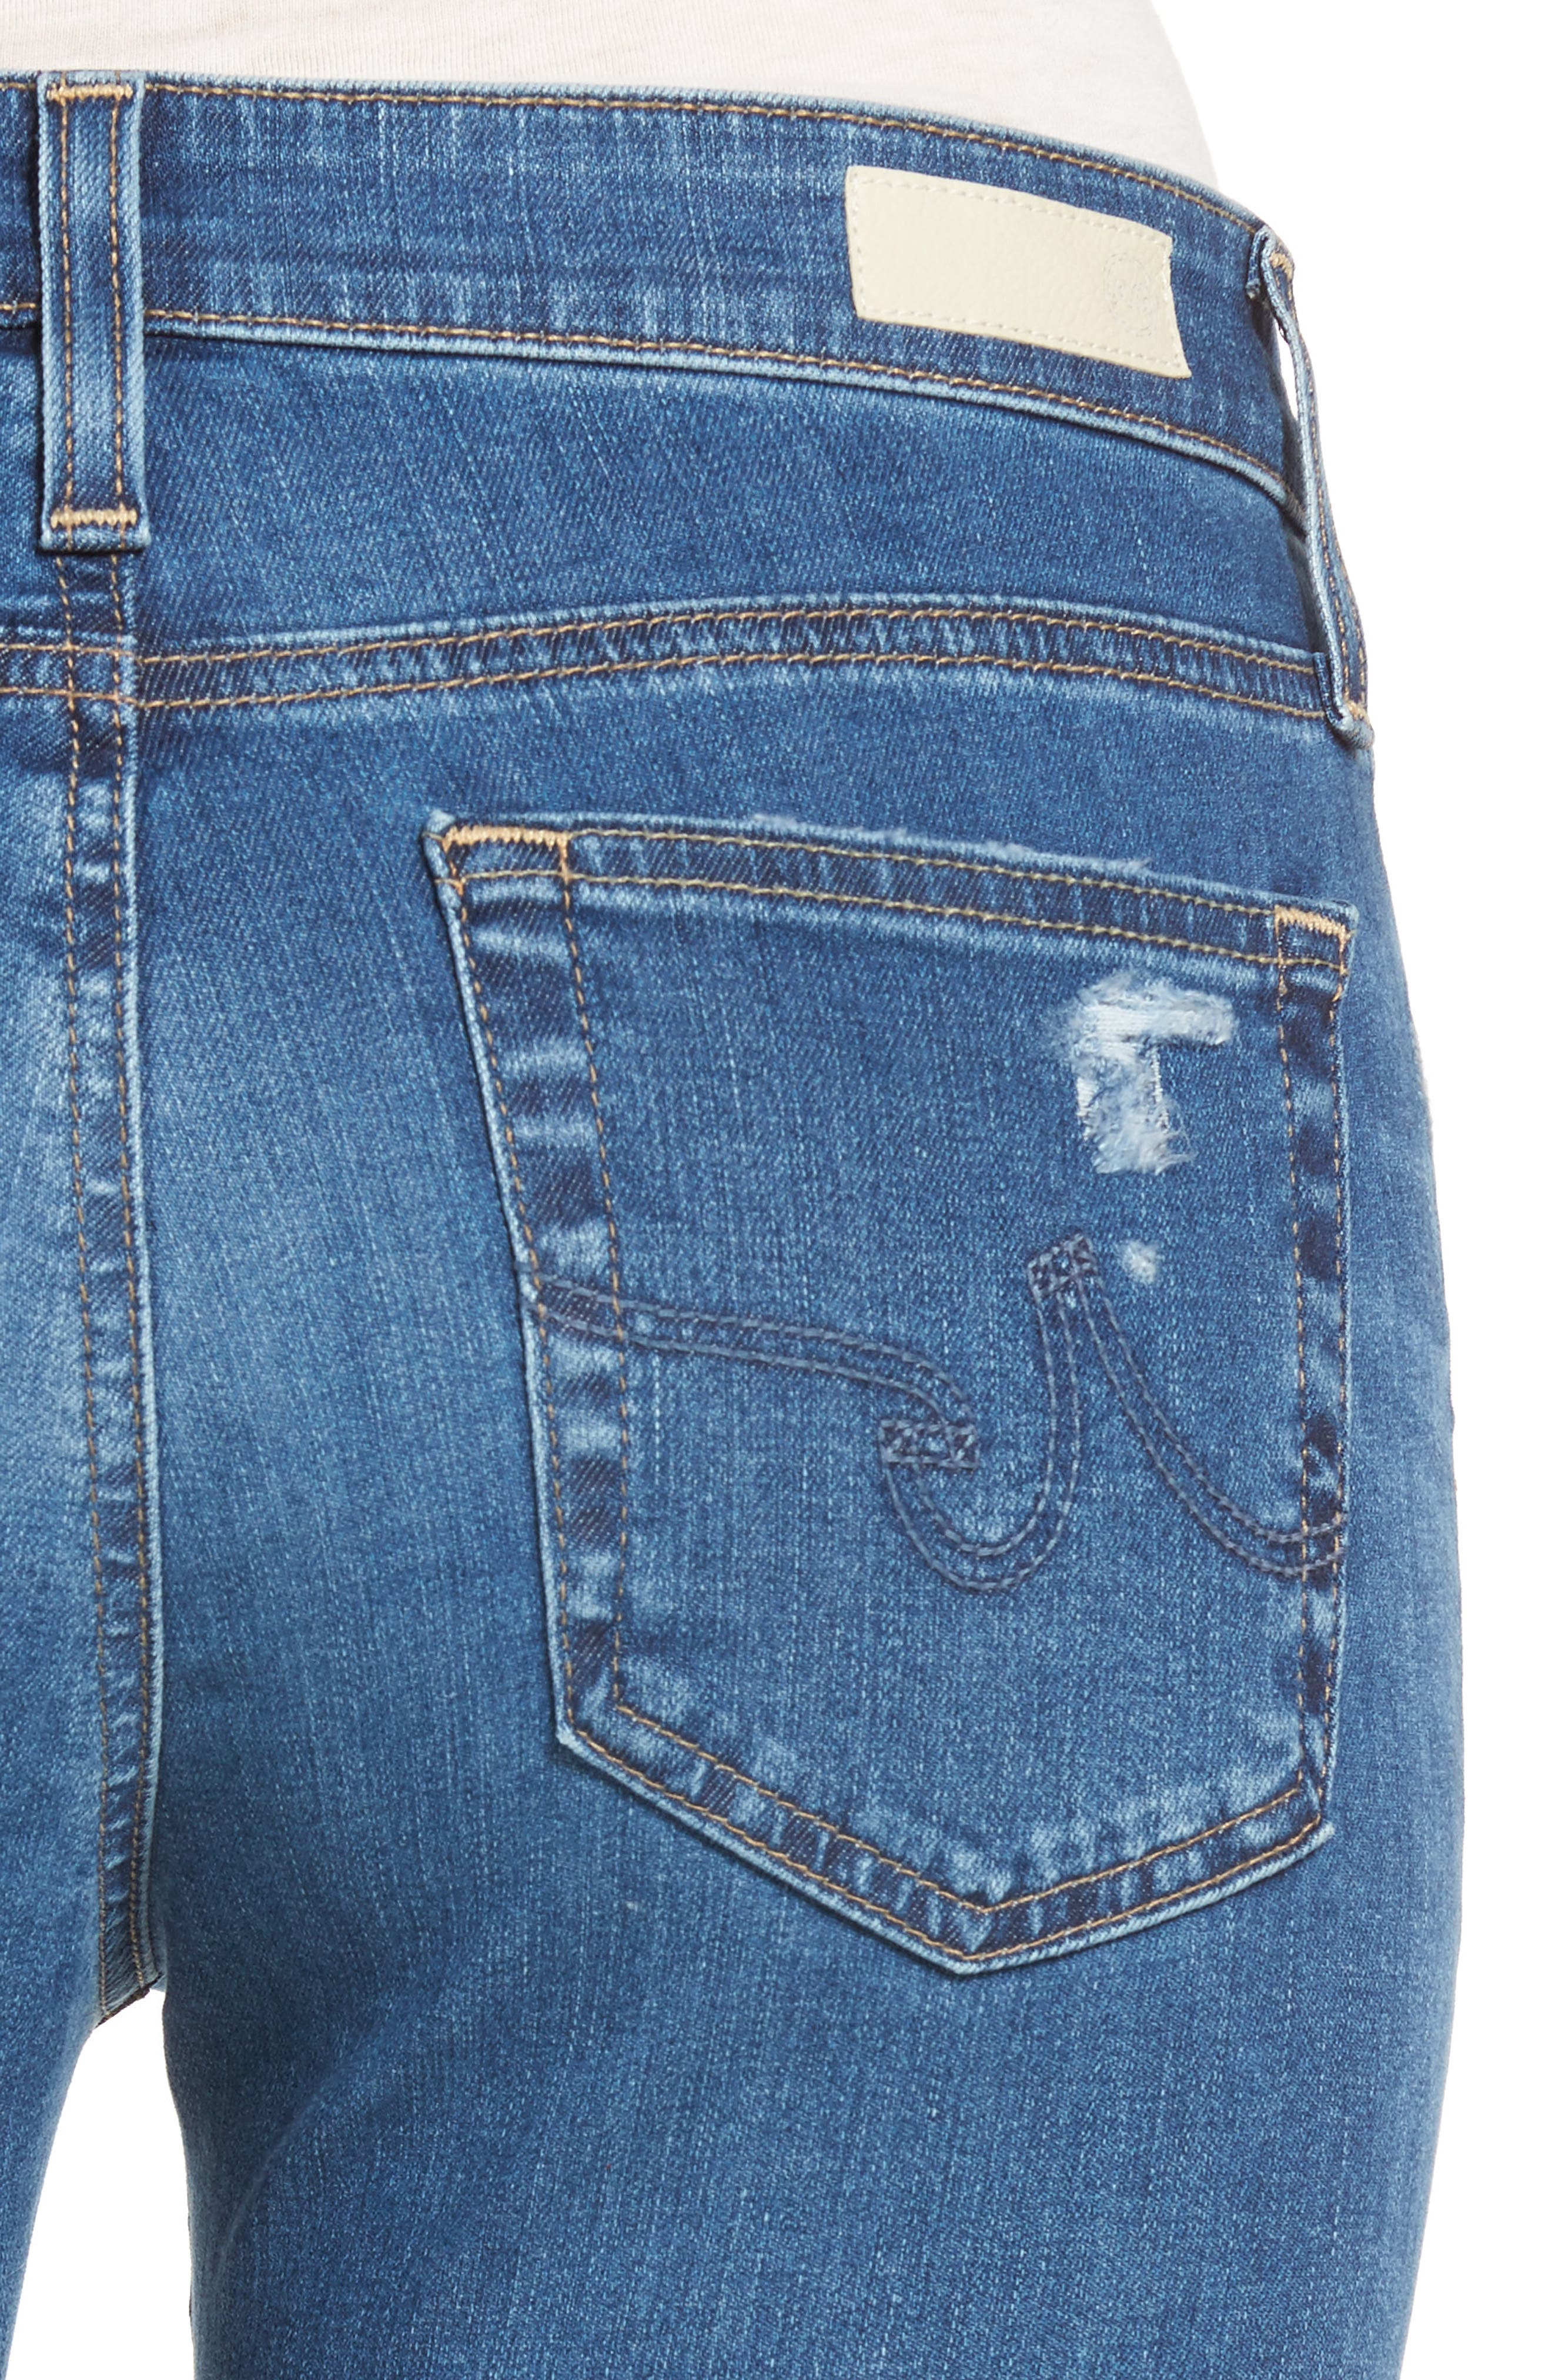 The Farrah High Waist Ankle Skinny Jeans,                             Alternate thumbnail 4, color,                             14 Year Blue Nile Destructed